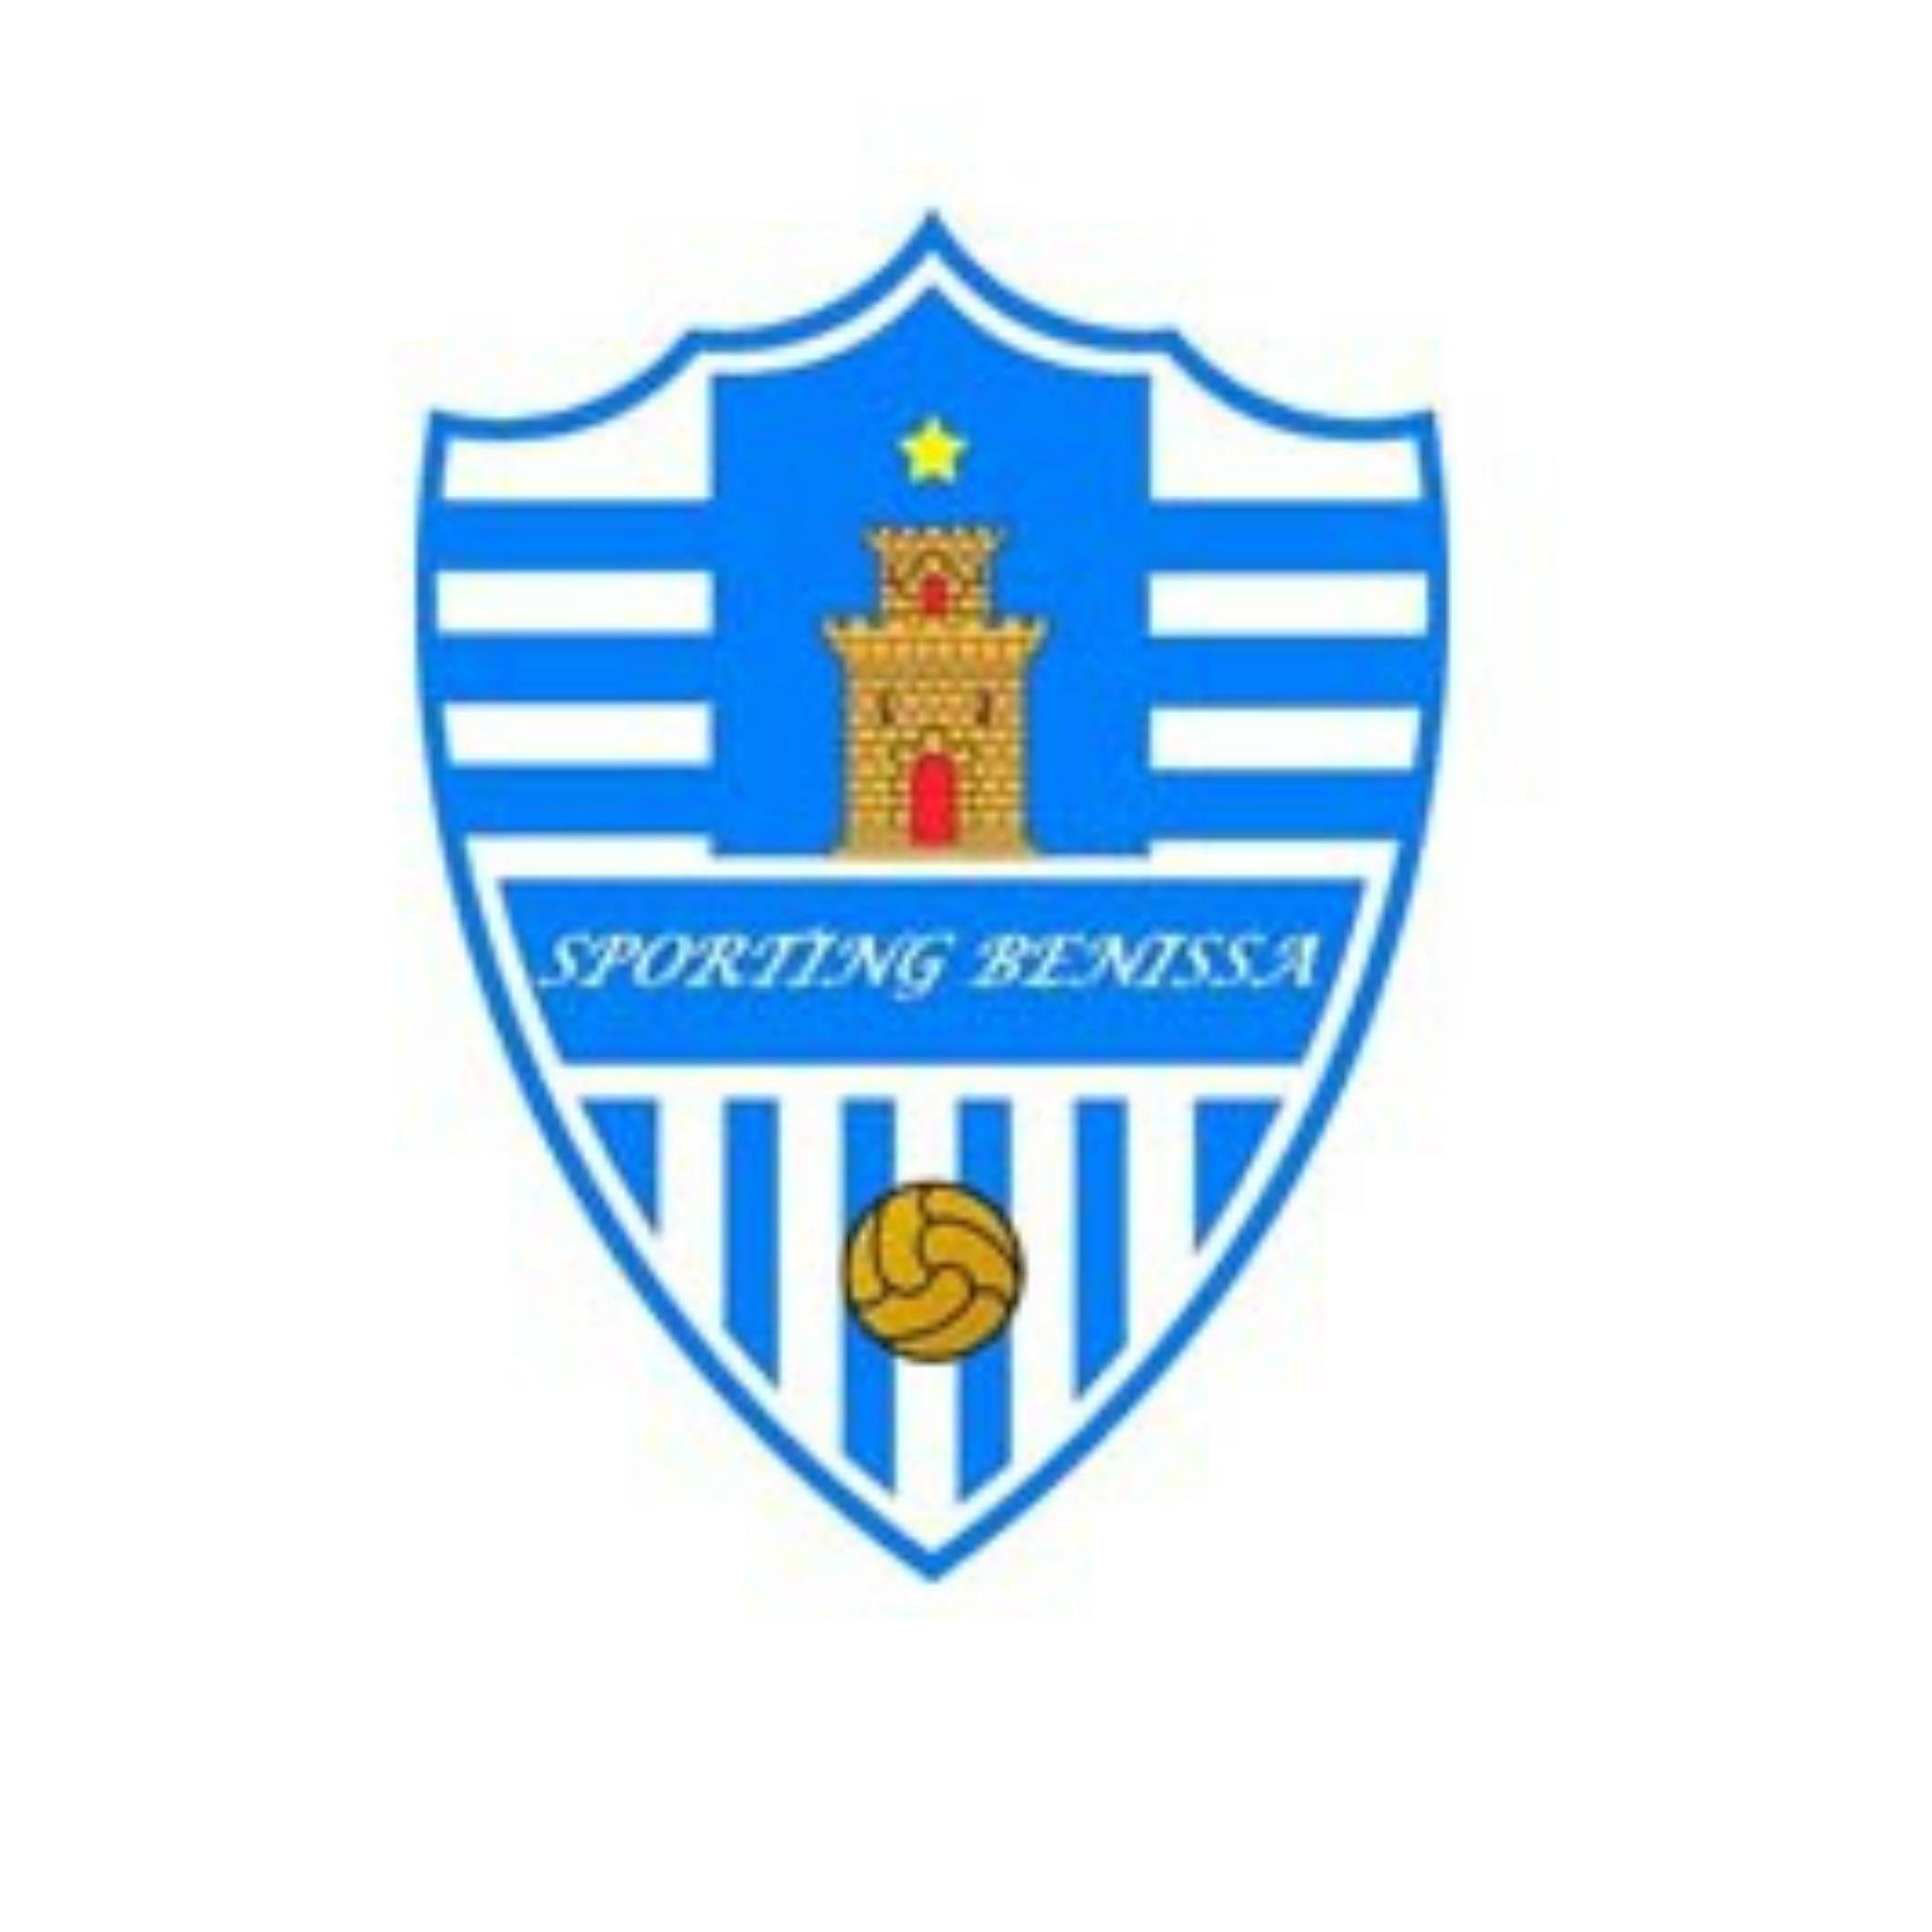 Football Club Sporting Benissa